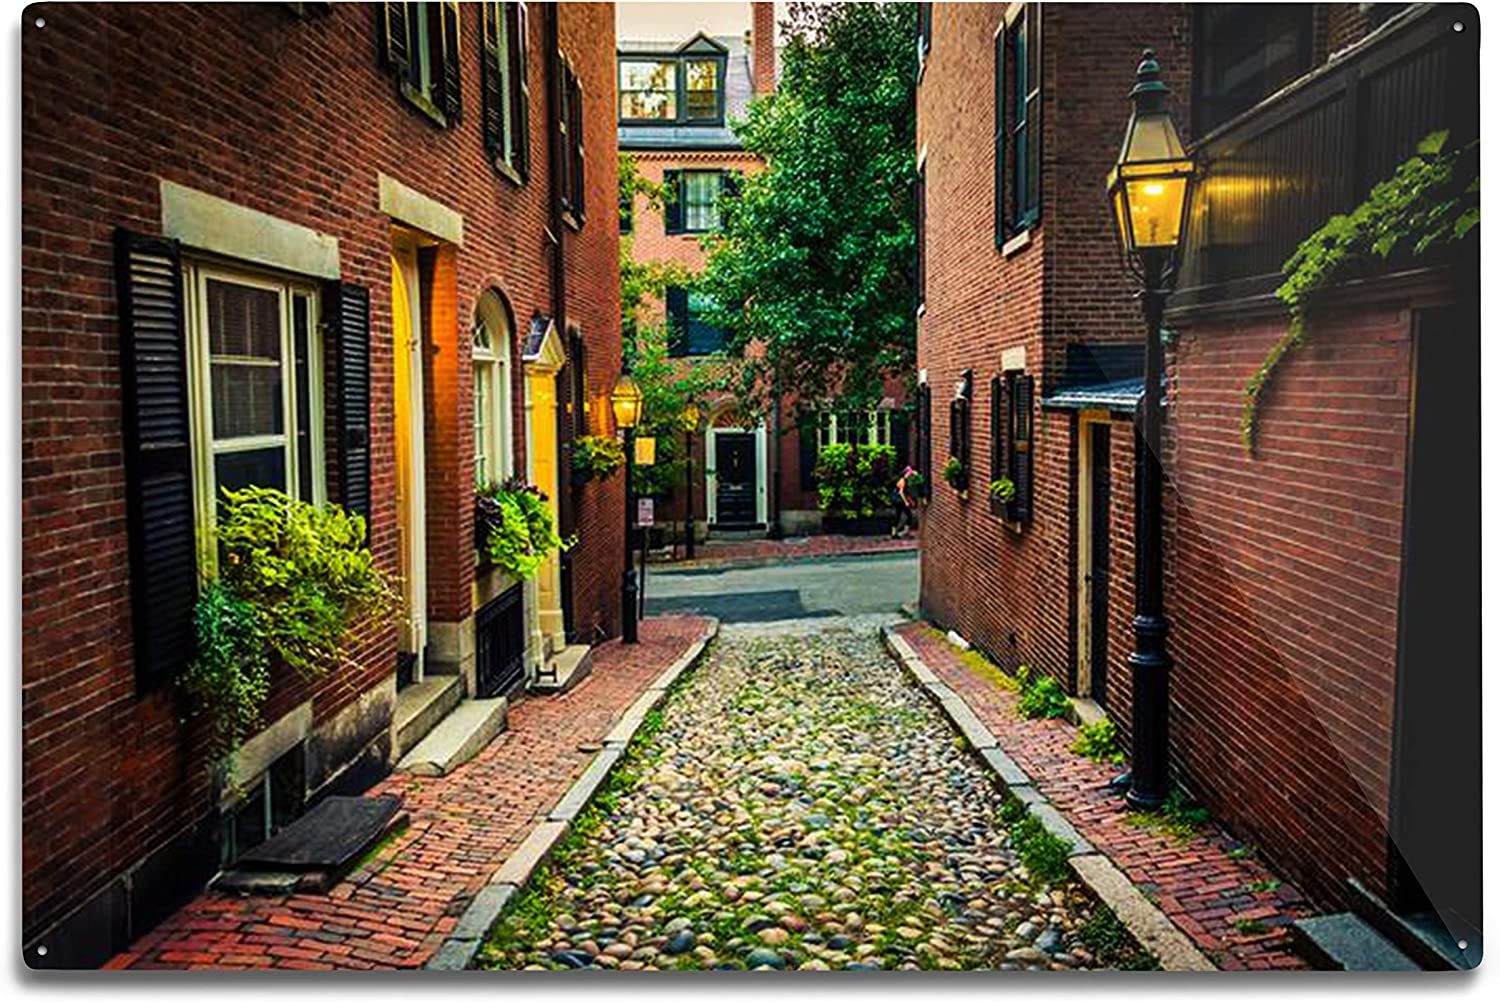 Amazon.com: Lantern Press Boston, Massachusetts - Acorn Street in ...